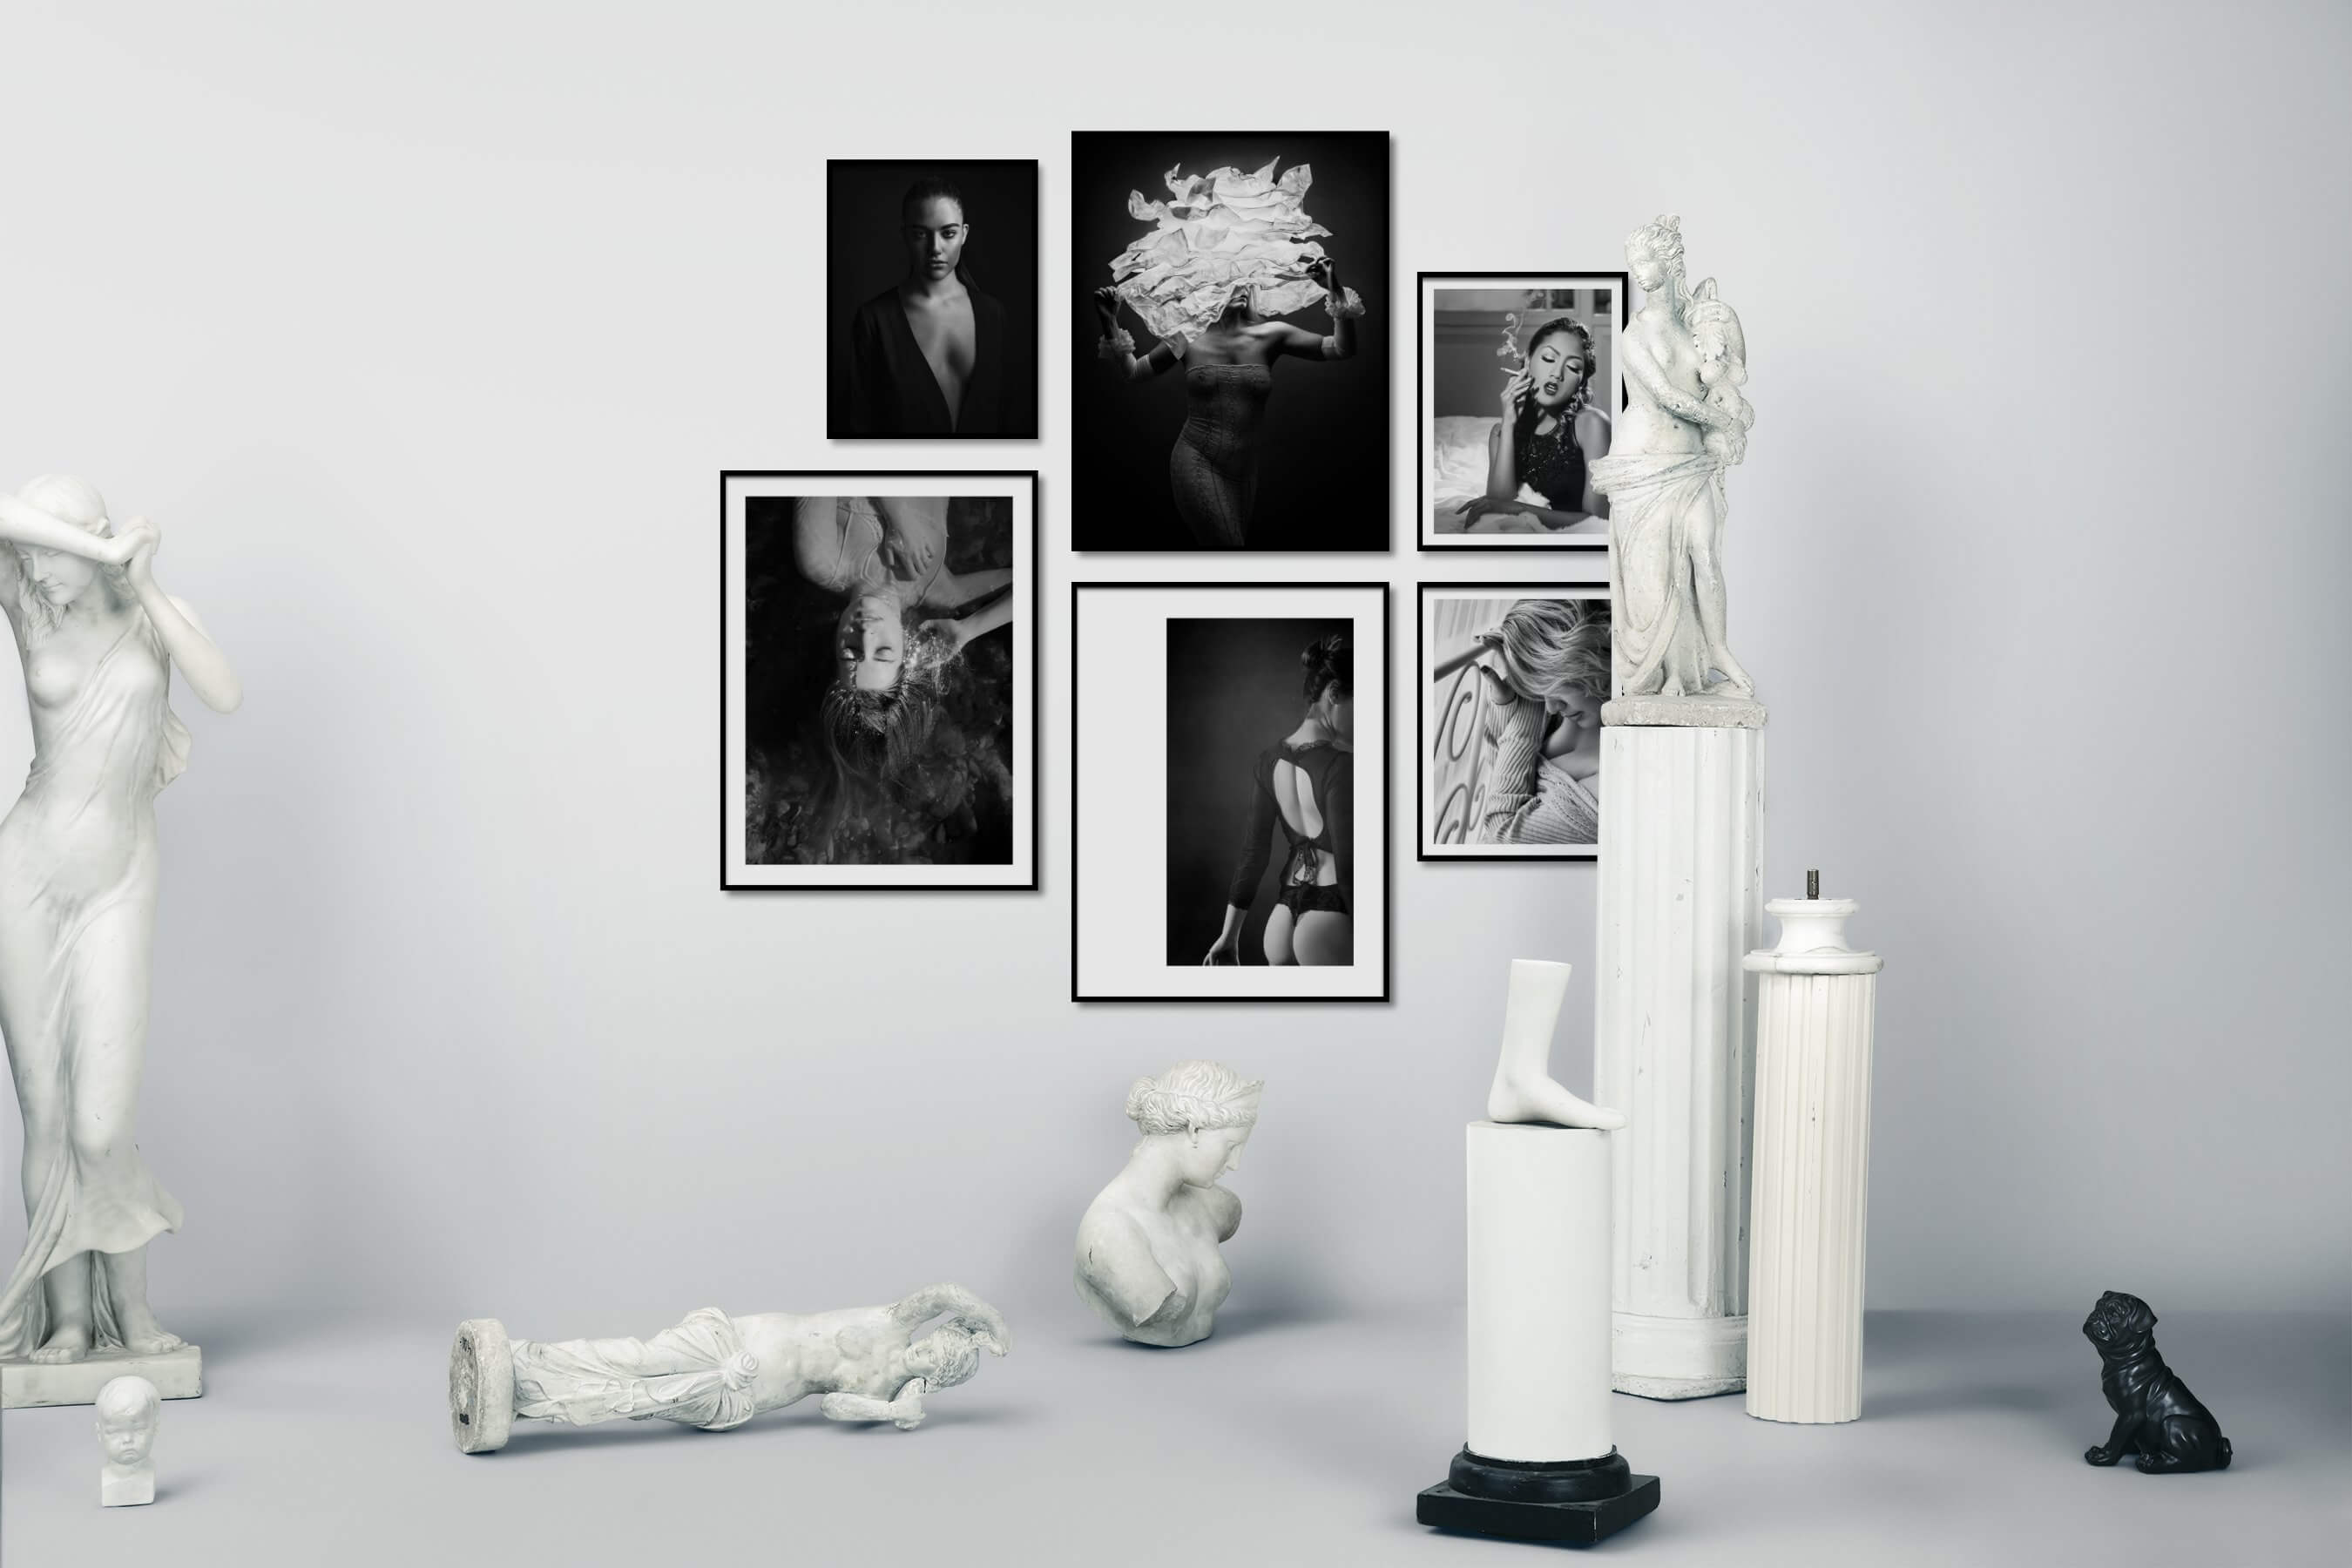 Gallery wall idea with six framed pictures arranged on a wall depicting Fashion & Beauty, Black & White, Dark Tones, Bold, Beach & Water, For the Minimalist, and Vintage